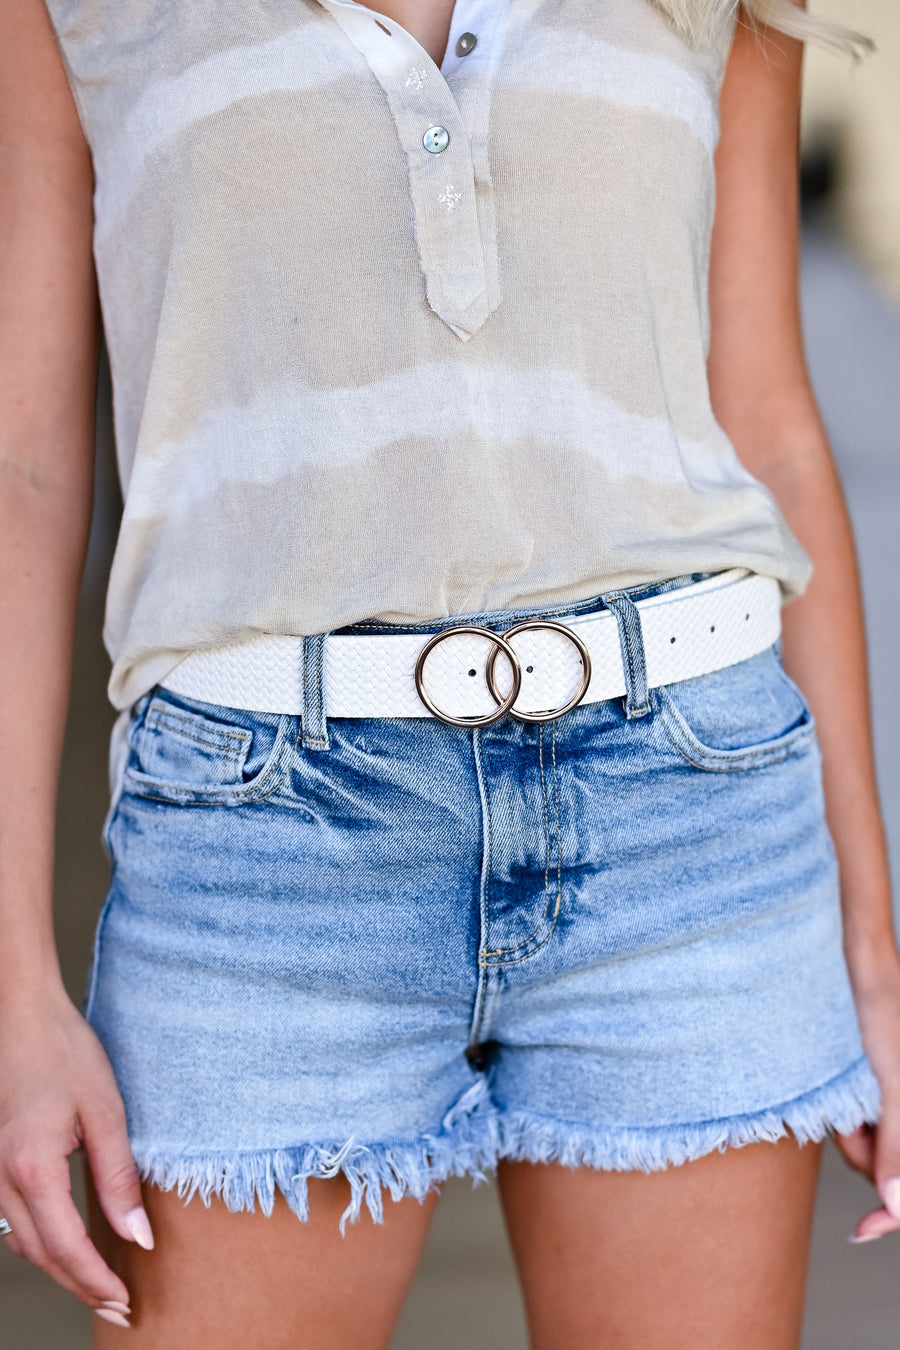 Double The Fun Textured Belt - White womens trendy double ring textured belt closet candy front